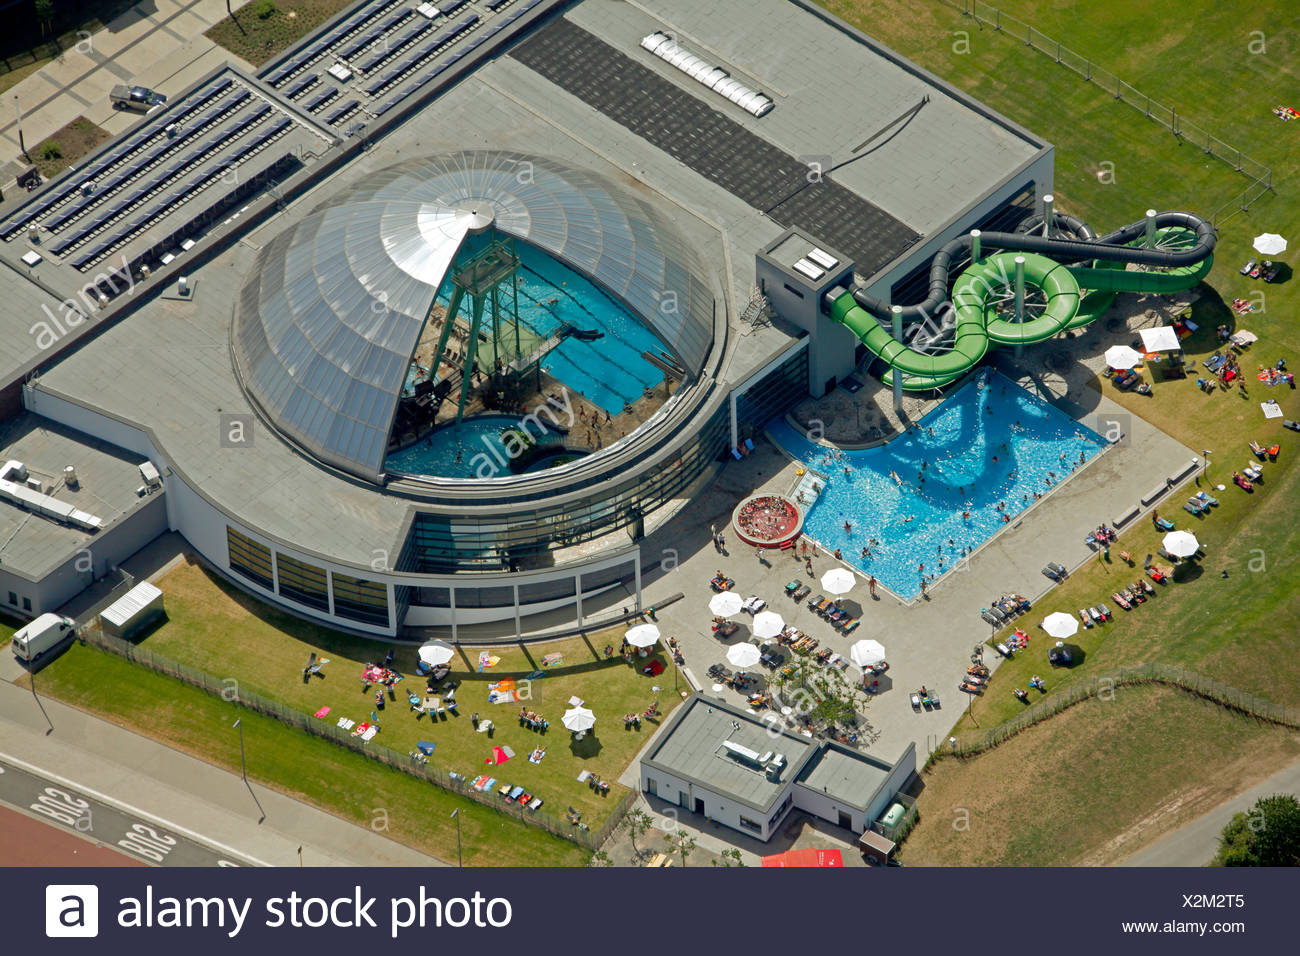 Aerial view, former steelwork grounds, Neue Mitte Oberhausen commercial development area, Centro shopping mall, marina - Stock Image